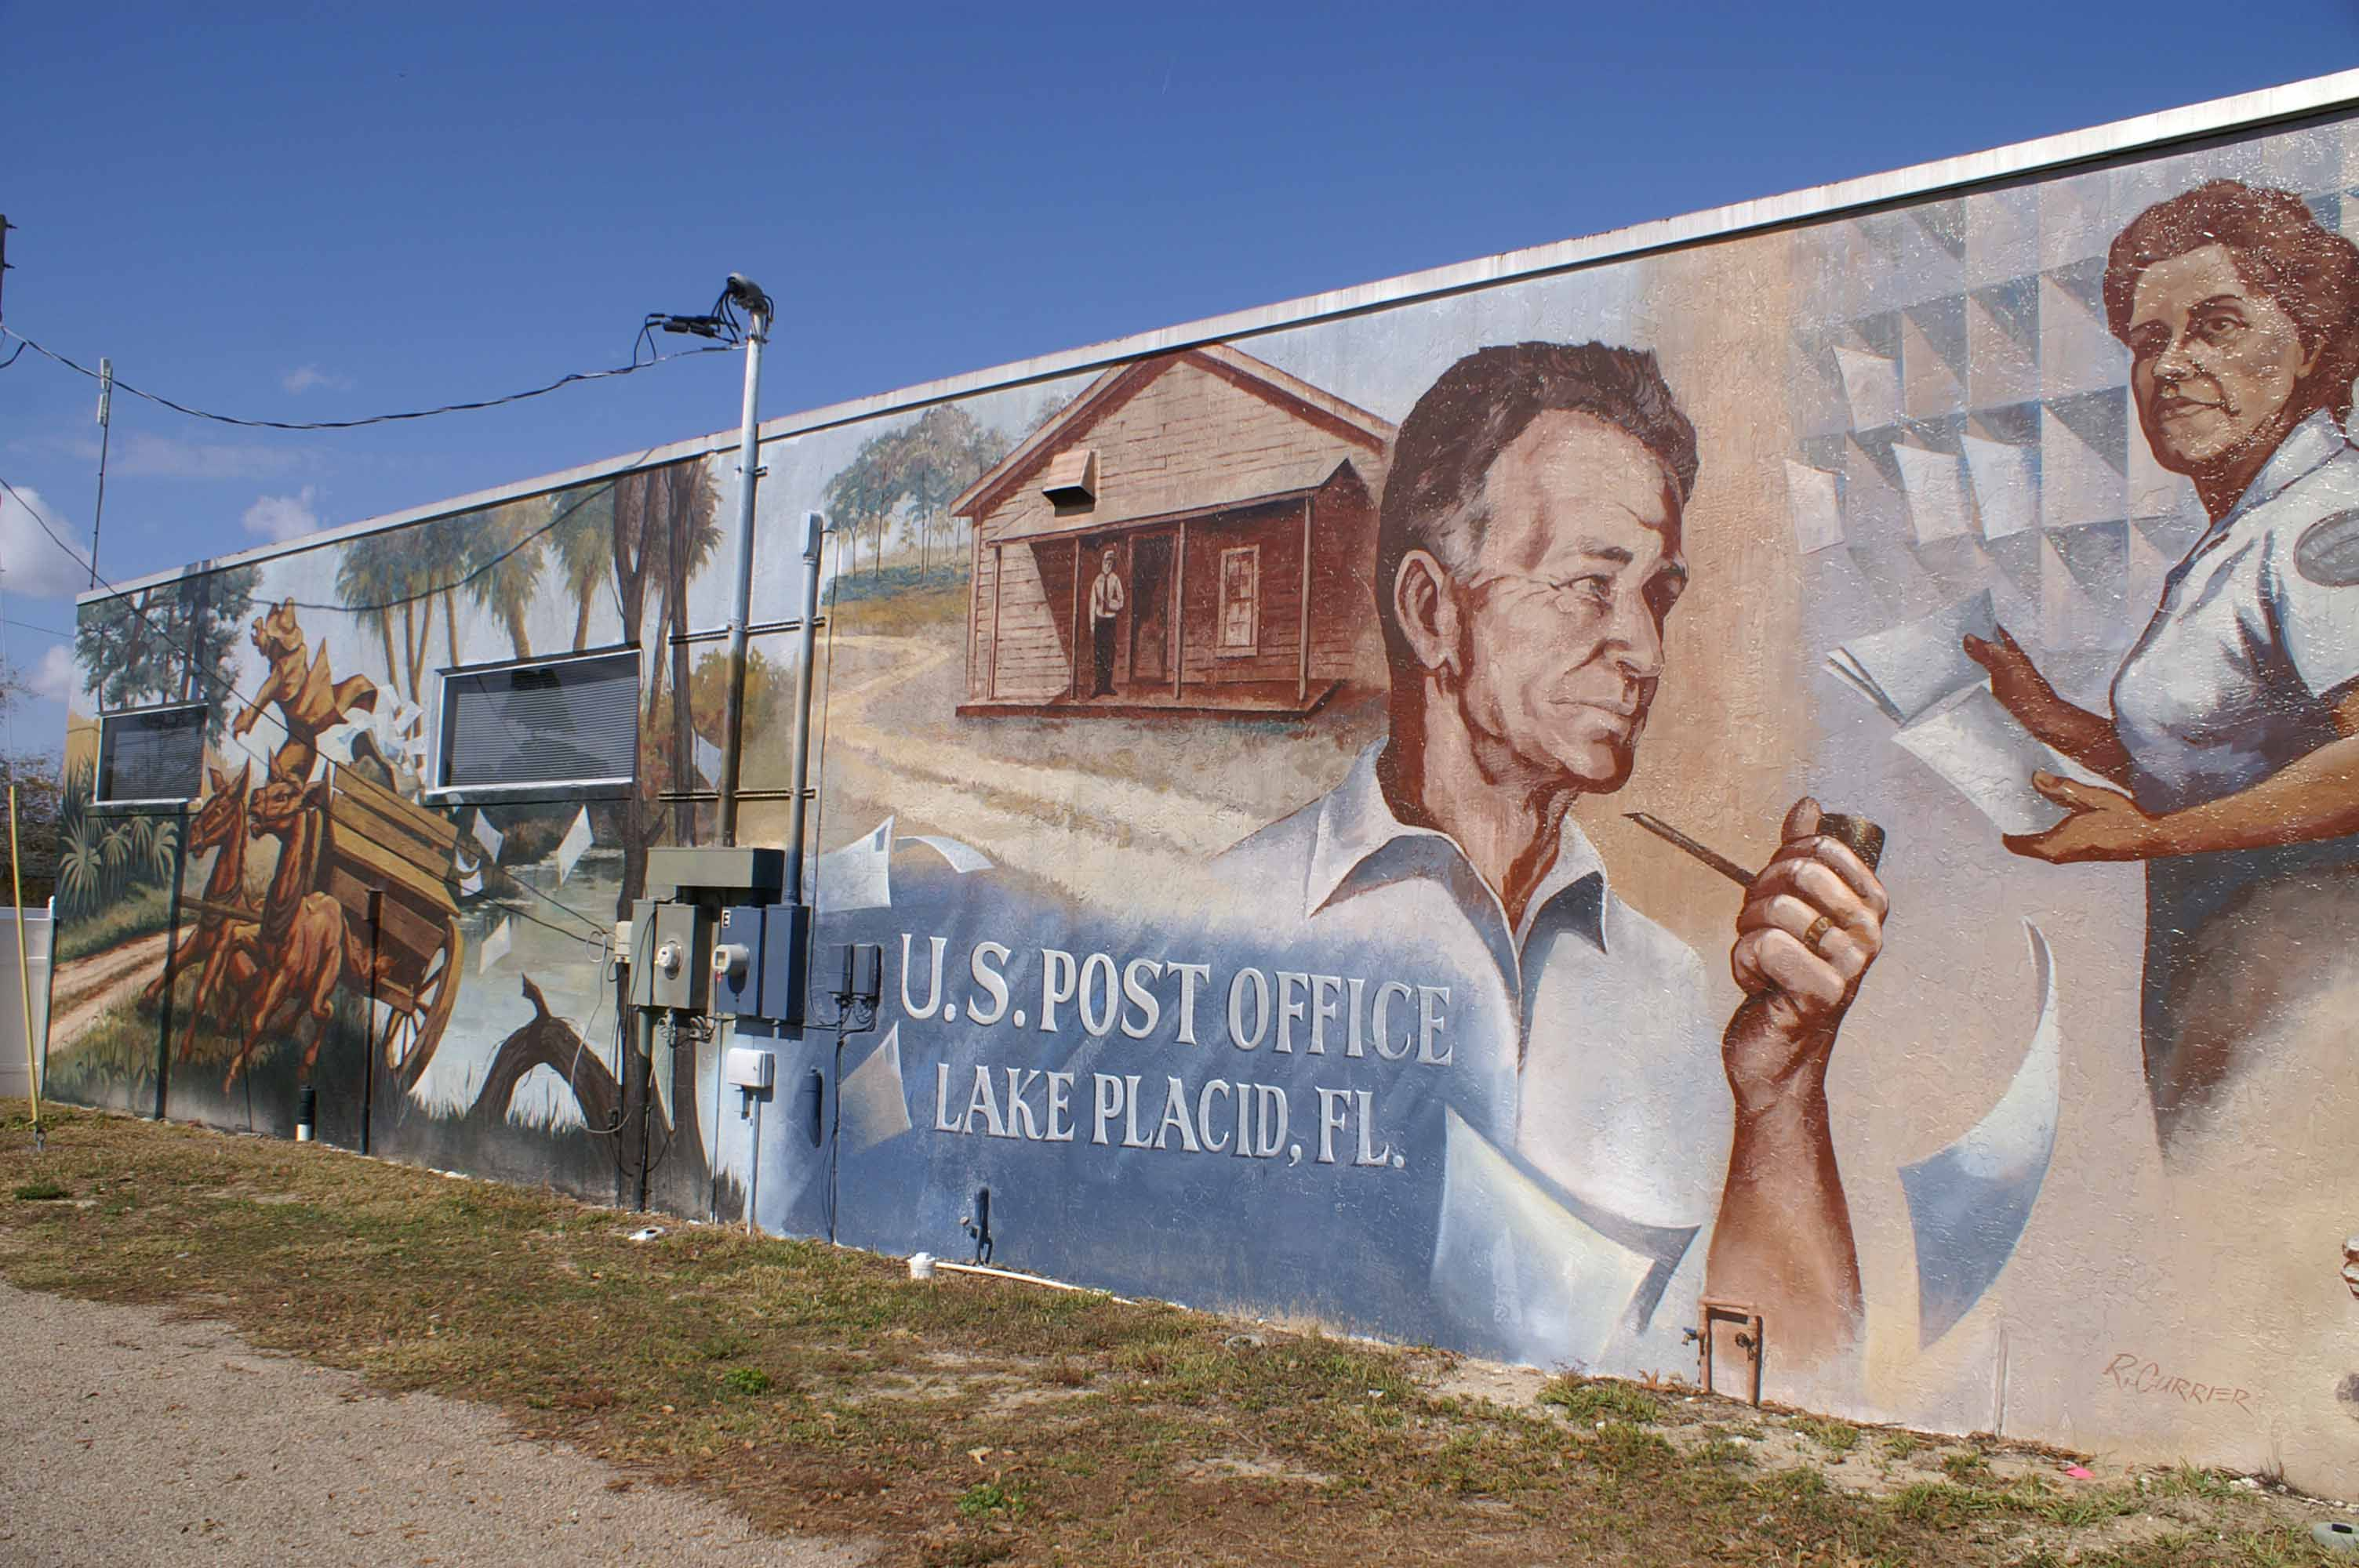 Mural Of Lake Placid United States Post Office History This Is One Of Many Full Wall Murals You Can See All Over Town Depicting Th Lake Placid Mural Art Lake